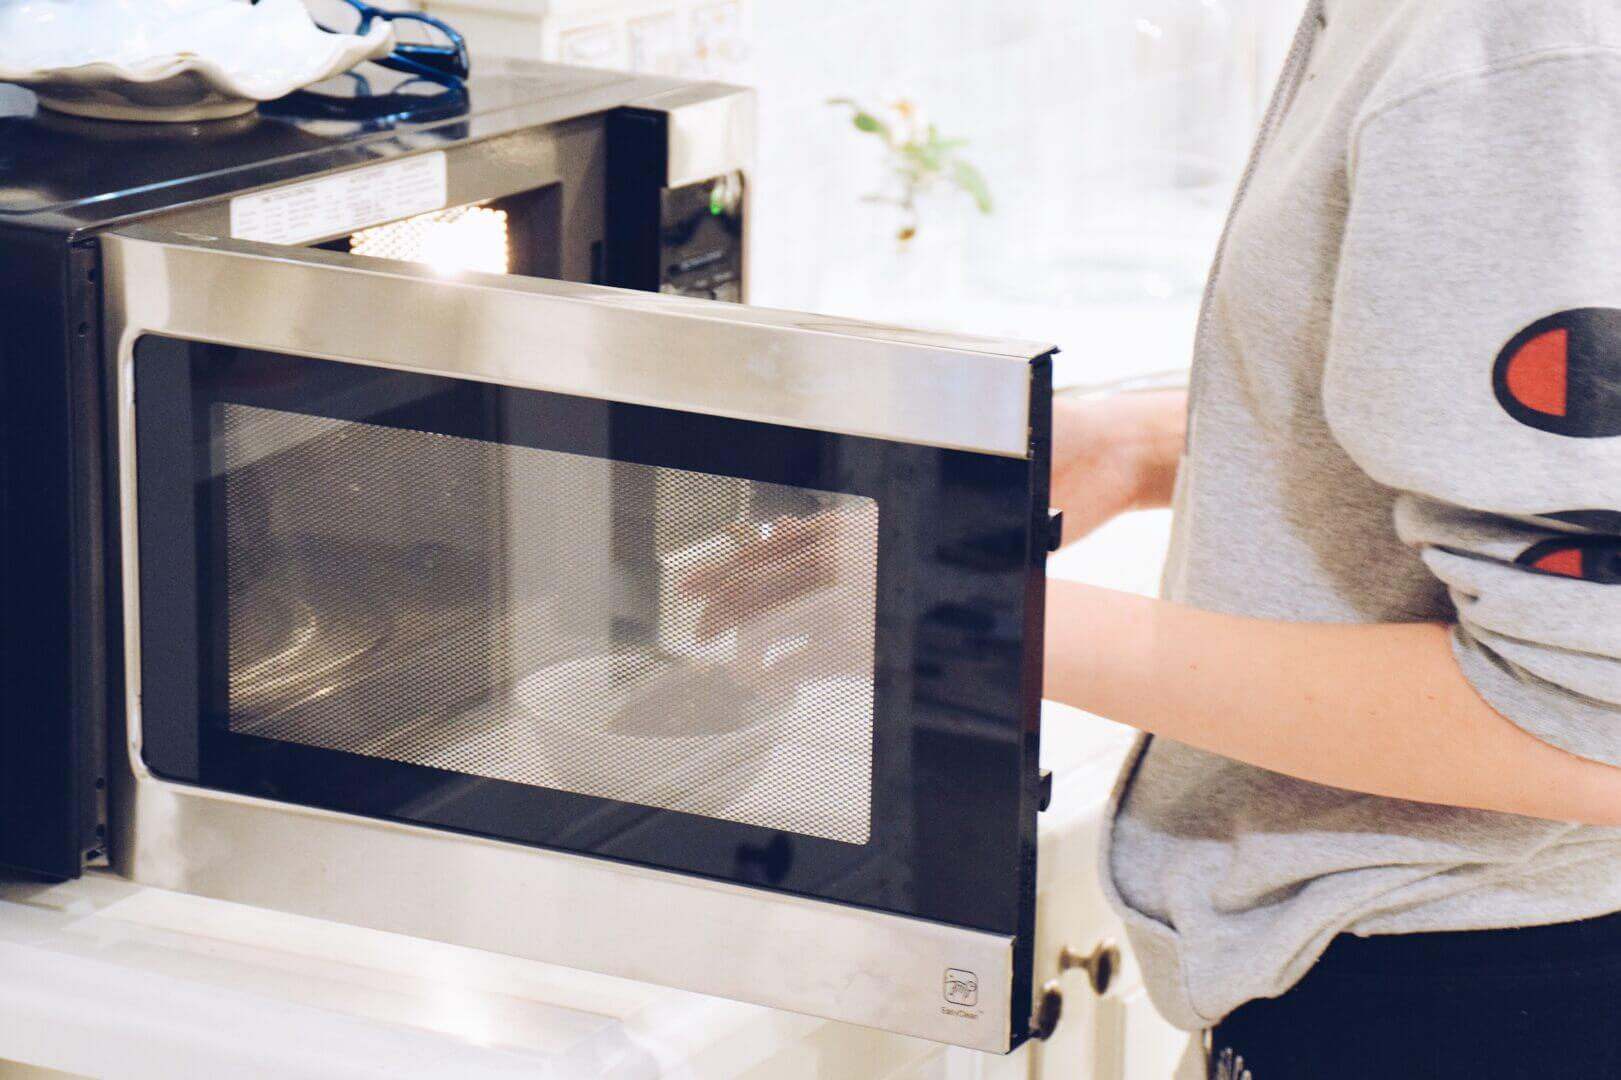 an rv microwave convection oven